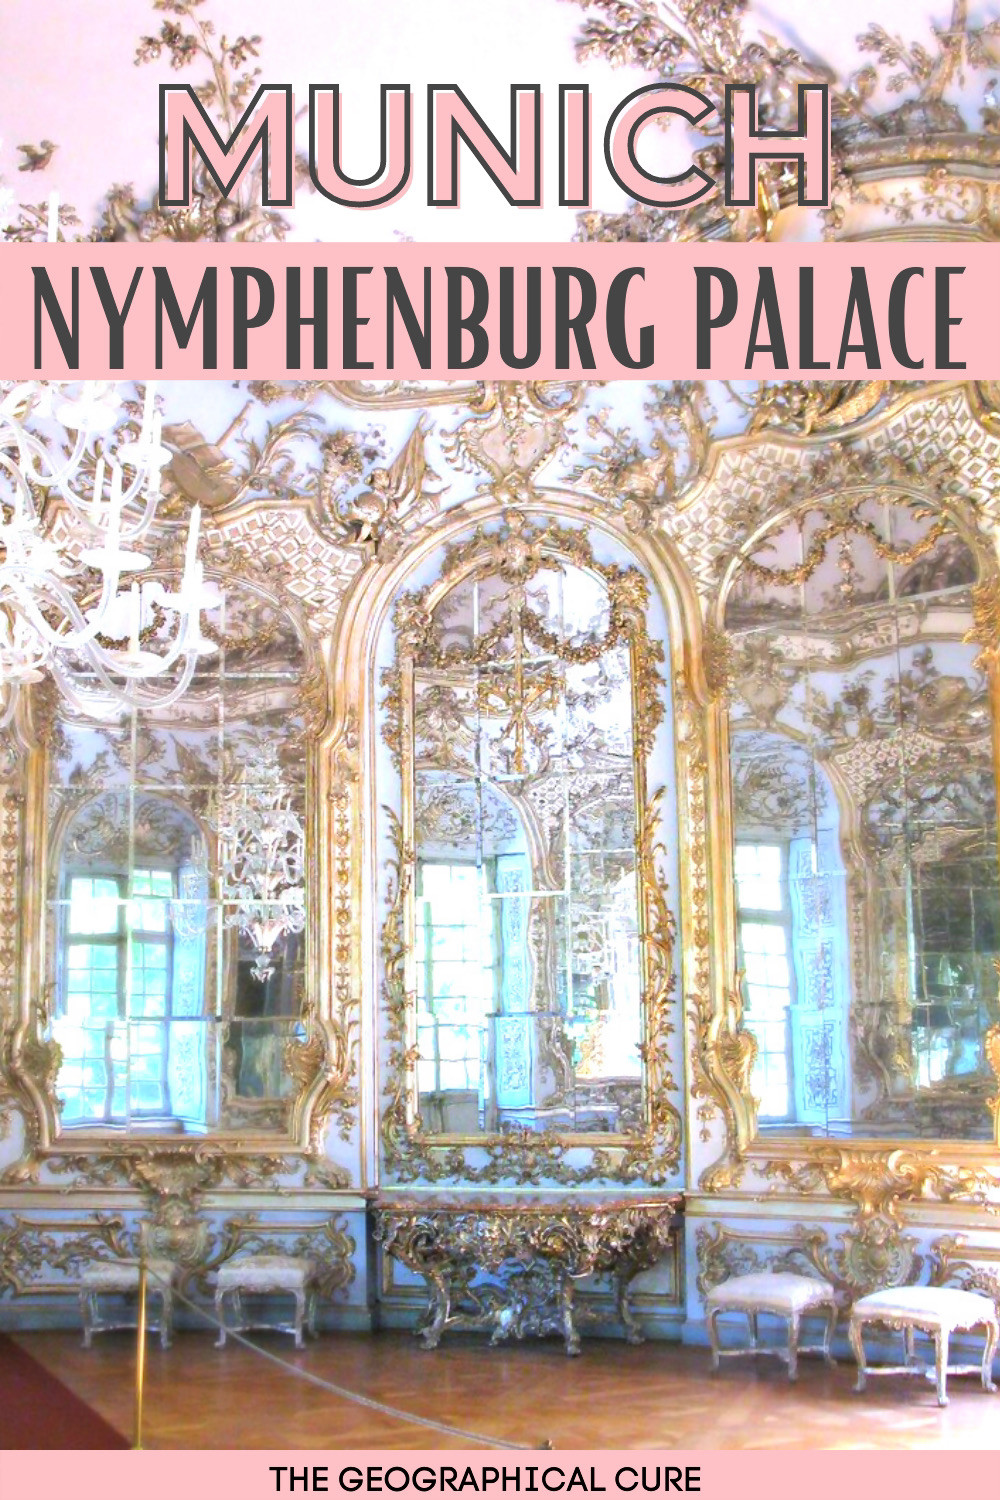 ultimate guide to visiting Nymphenburg Palace in Munich Germany